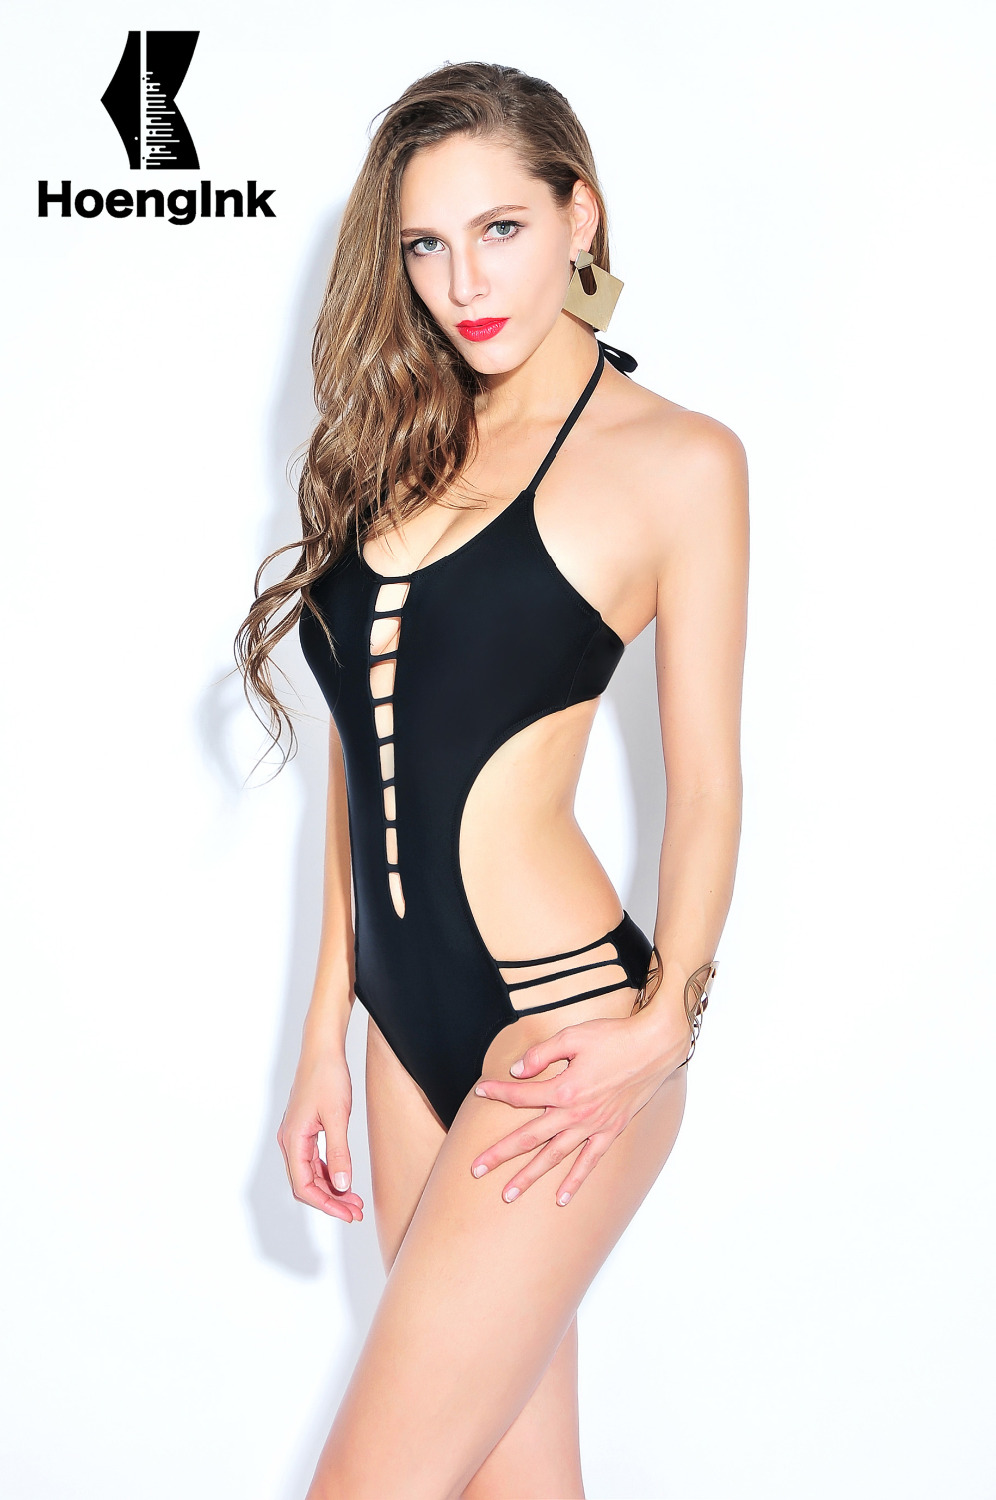 2017 BRANDMAN New black temptation sexy swimsuit hollow no back beach pool swimsuits Size S to 2XL 66083 august silk new black women s size xl sheer back knit cardigan sweater $60